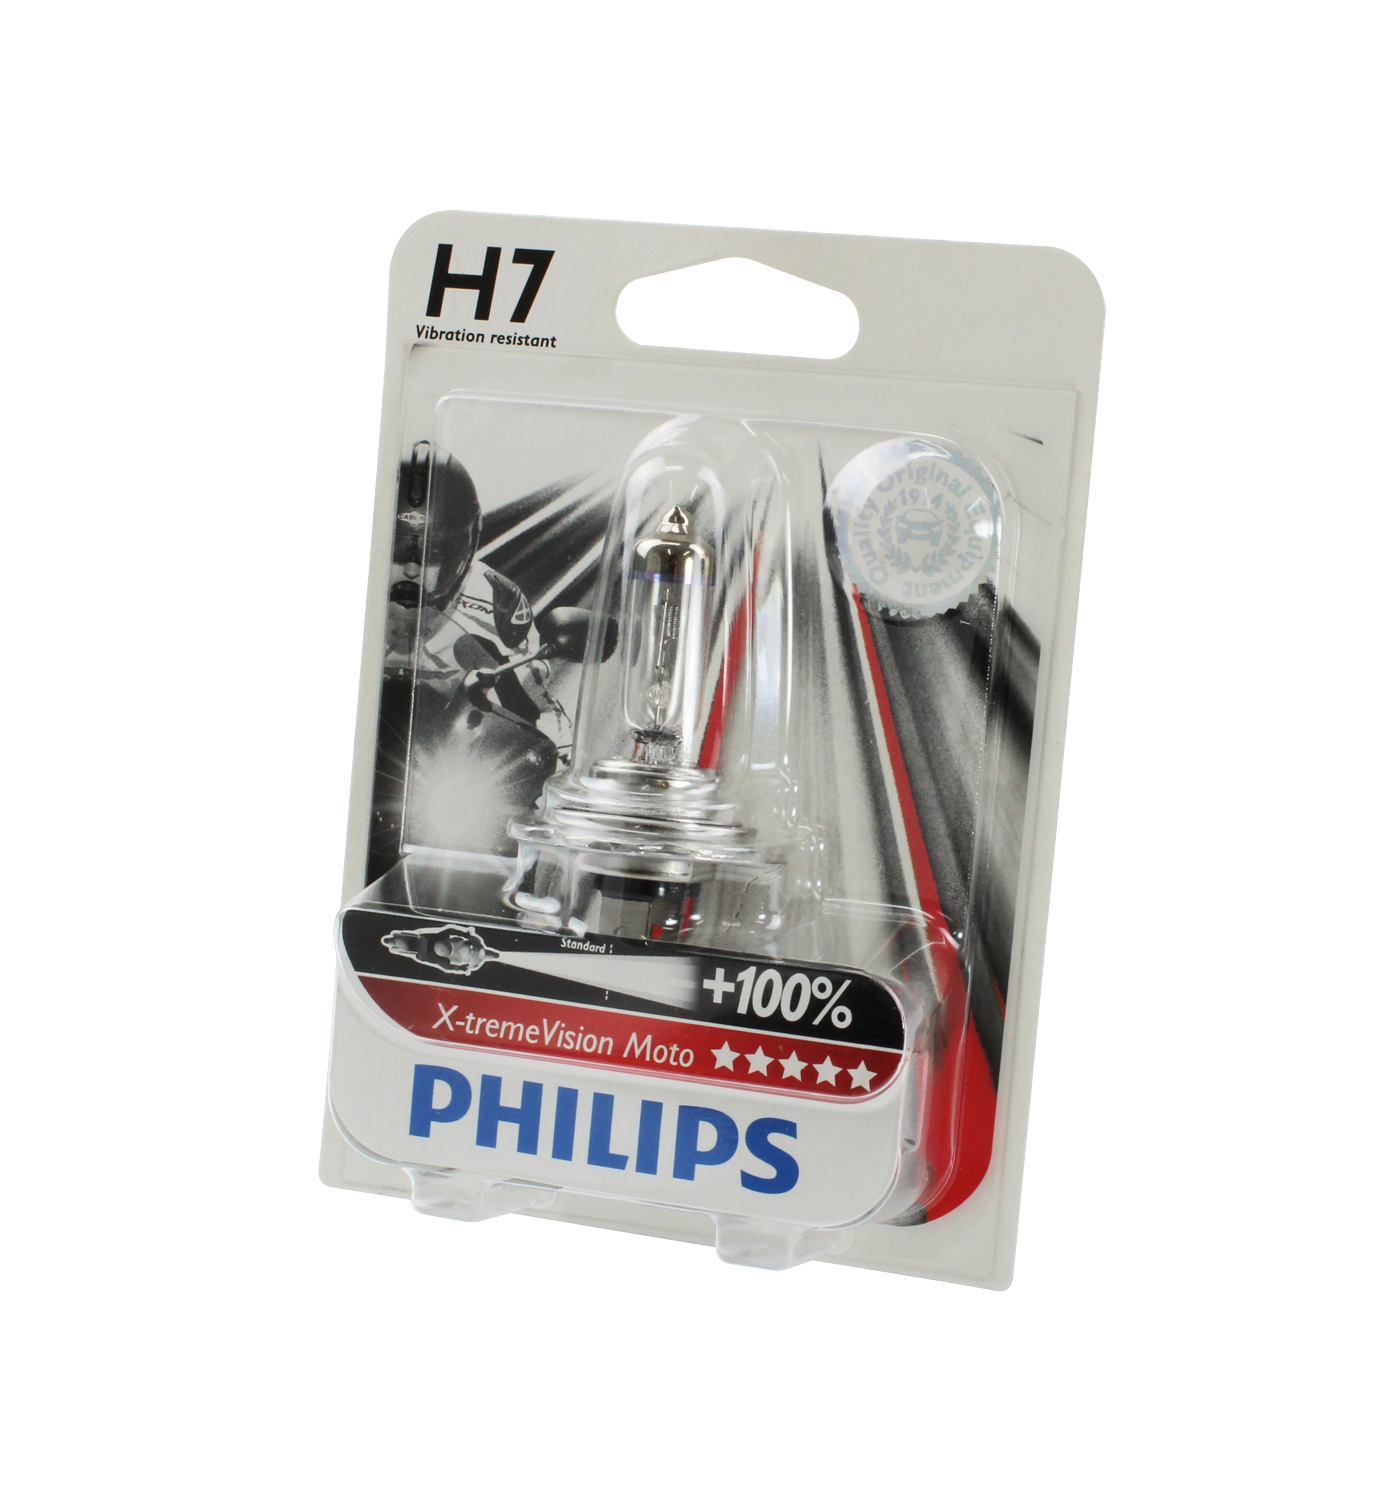 genuine philips motorcycle xtreme vision headlight bulb h7. Black Bedroom Furniture Sets. Home Design Ideas